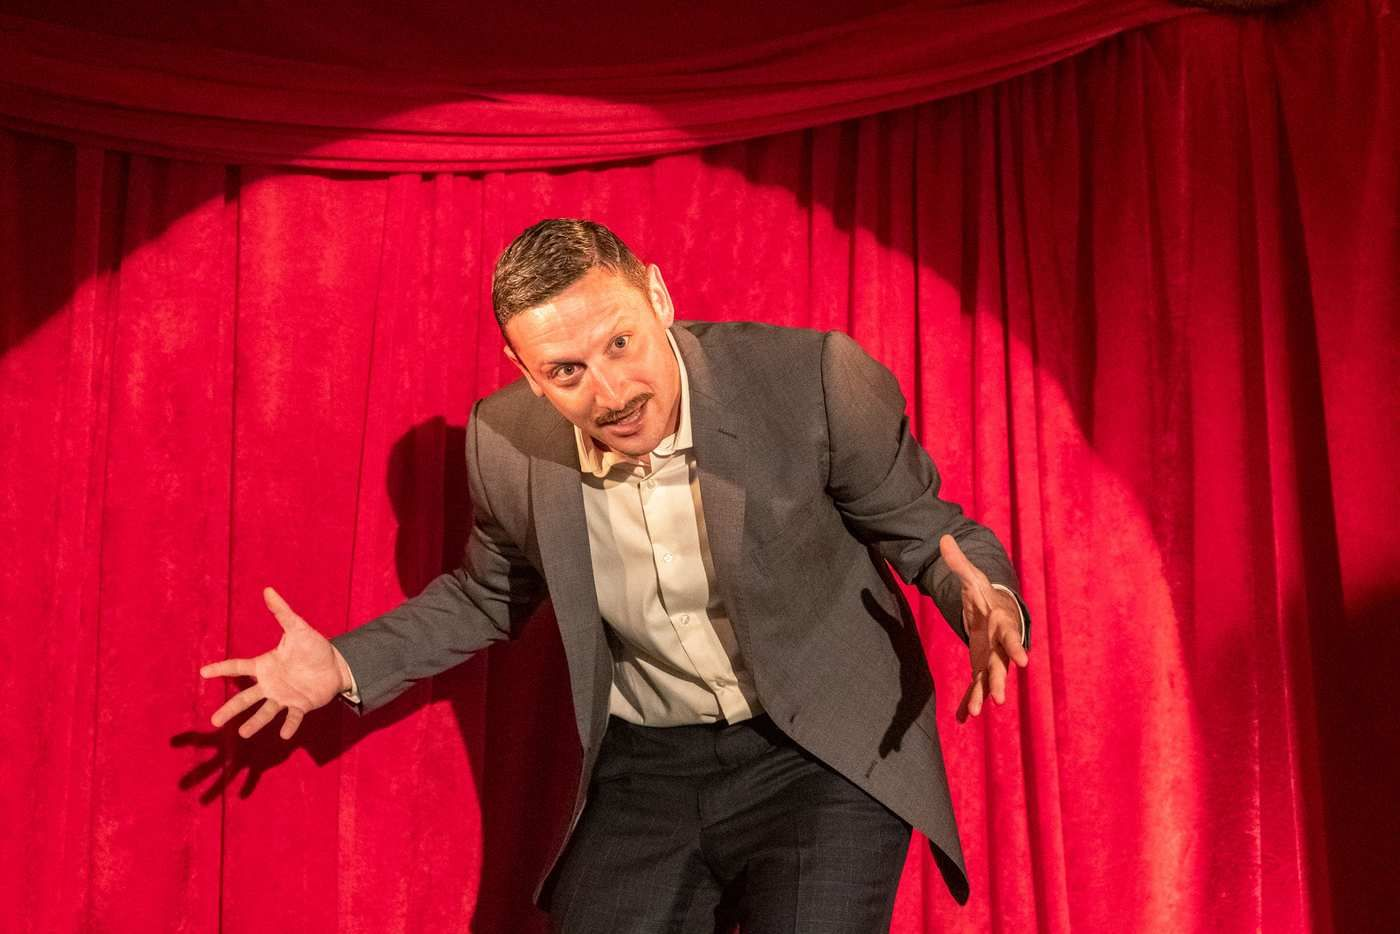 Tim Robinson S Netflix Sketch Show Is Comedy Perfection Funny Sketches Netflix Best Dating Apps